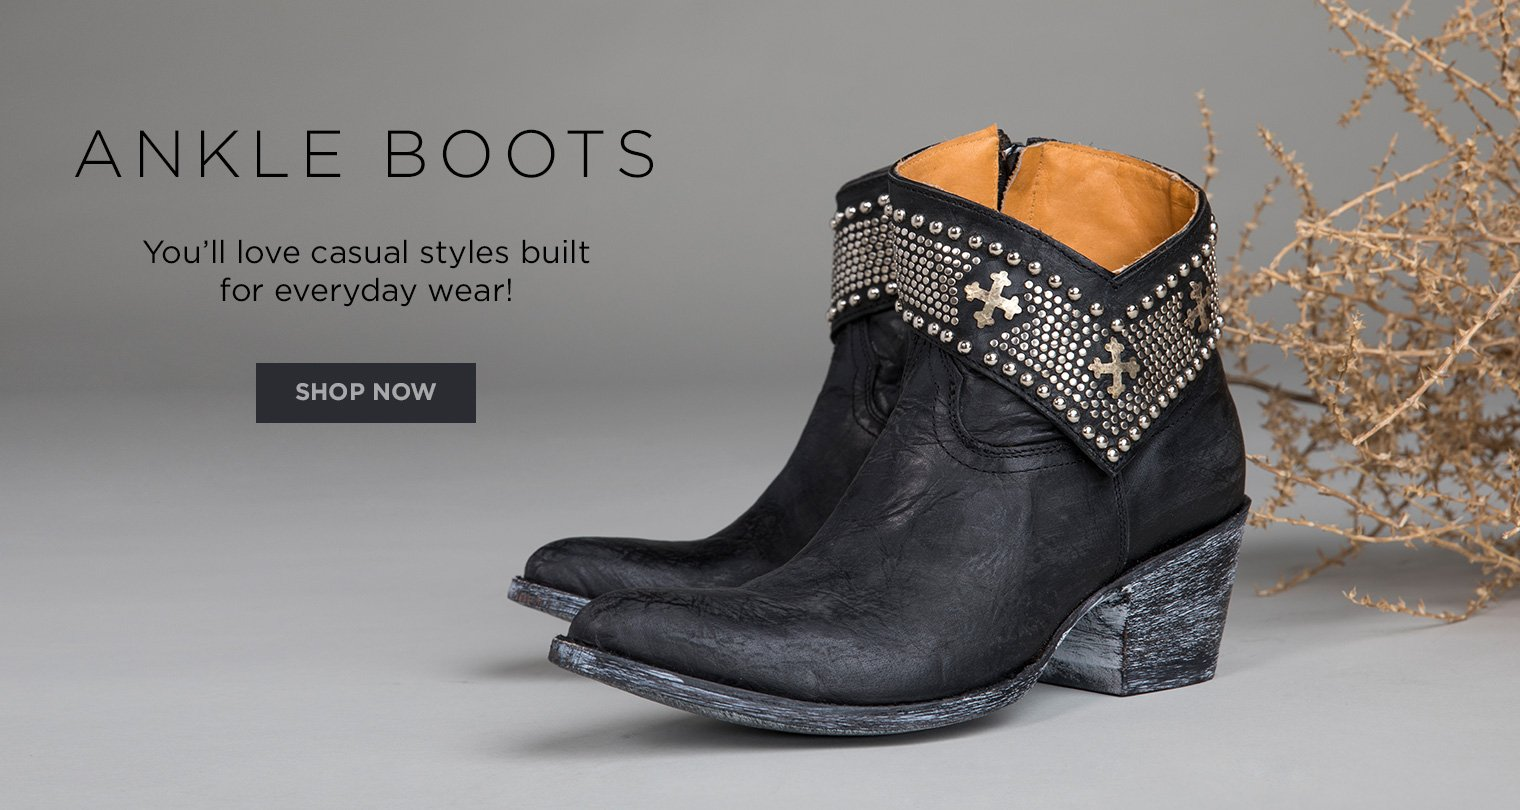 Ankle Boots. You'll love casual styles built for everyday wear! Shop now.